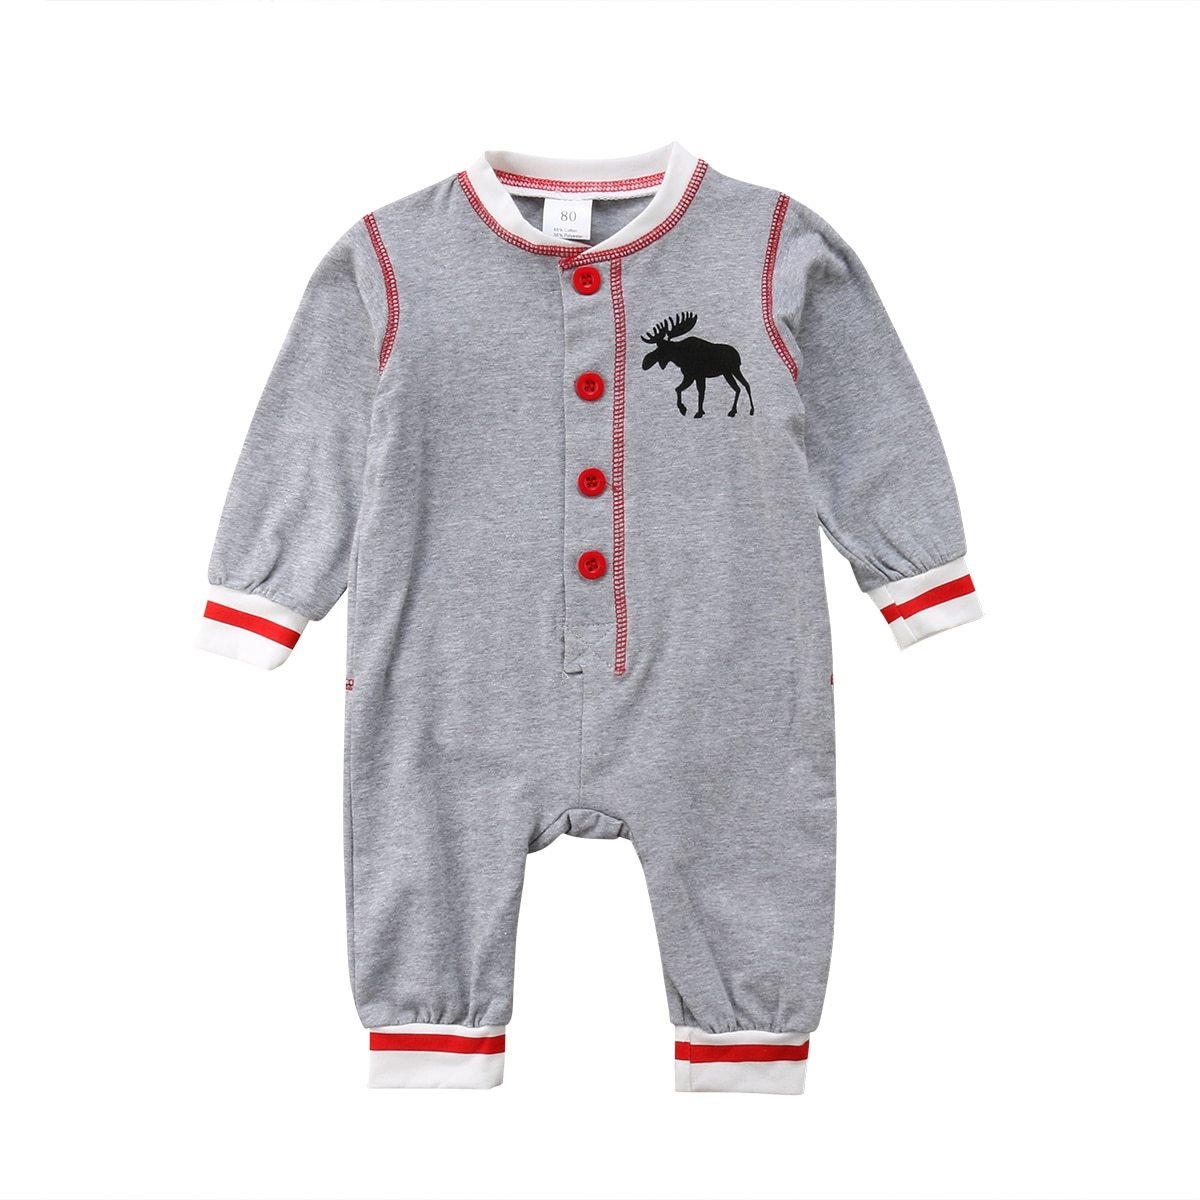 Baby Long Sleeve Romper w/ Moose - Maraya's Marketplace